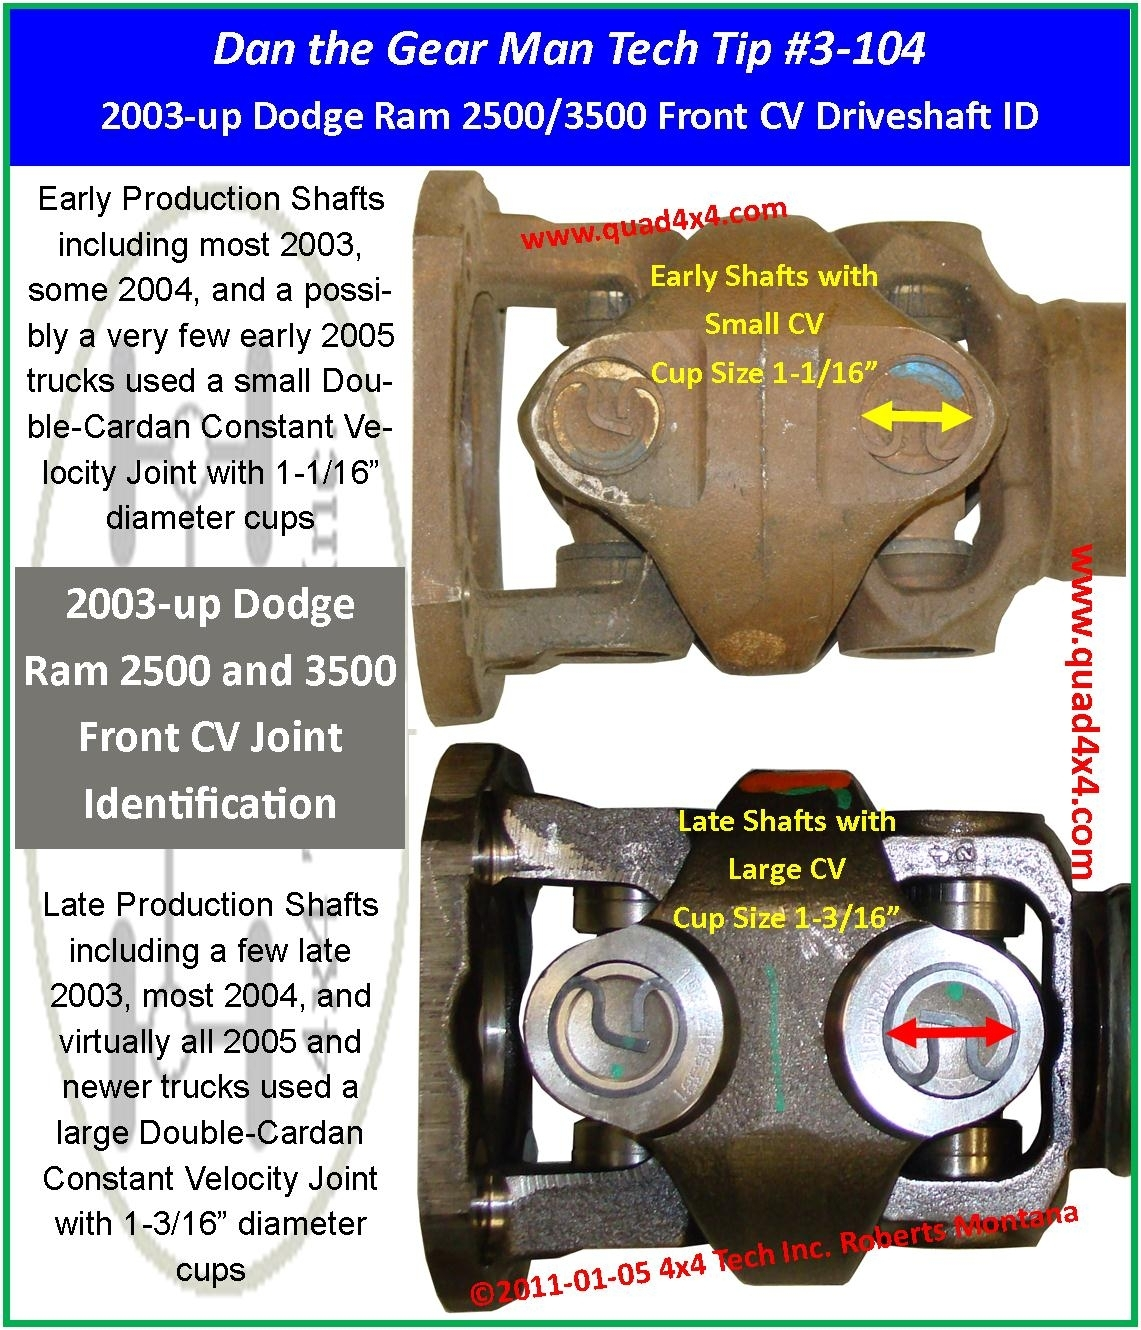 Dodgefrontdriveshaft2003-Up - Torque King 4X4 intended for 2003 Dodge Ram 1500 Parts Diagram